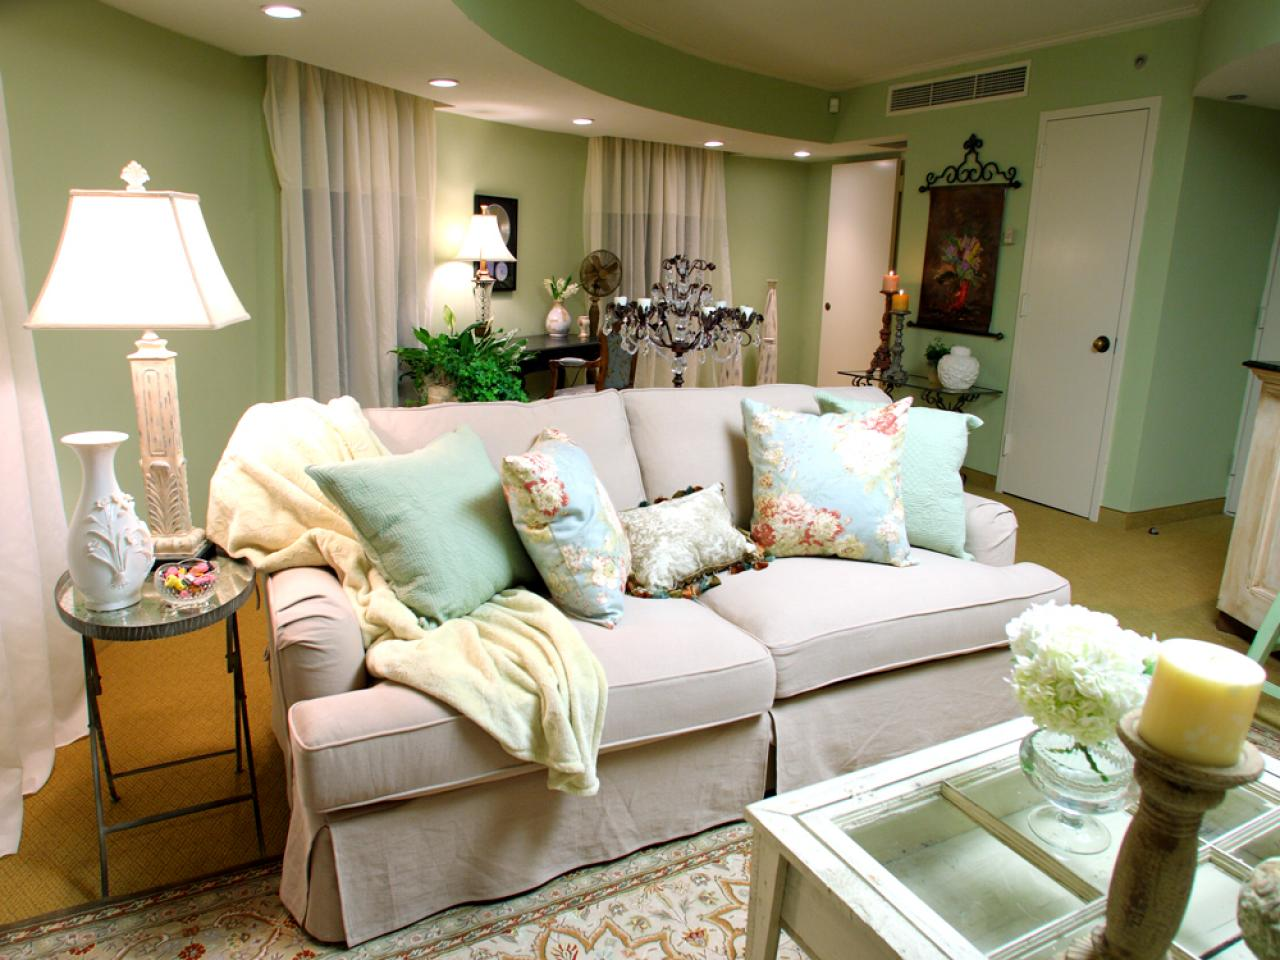 Hgtv 39 S Design Star Team Creates A Shabby Chic Suite With